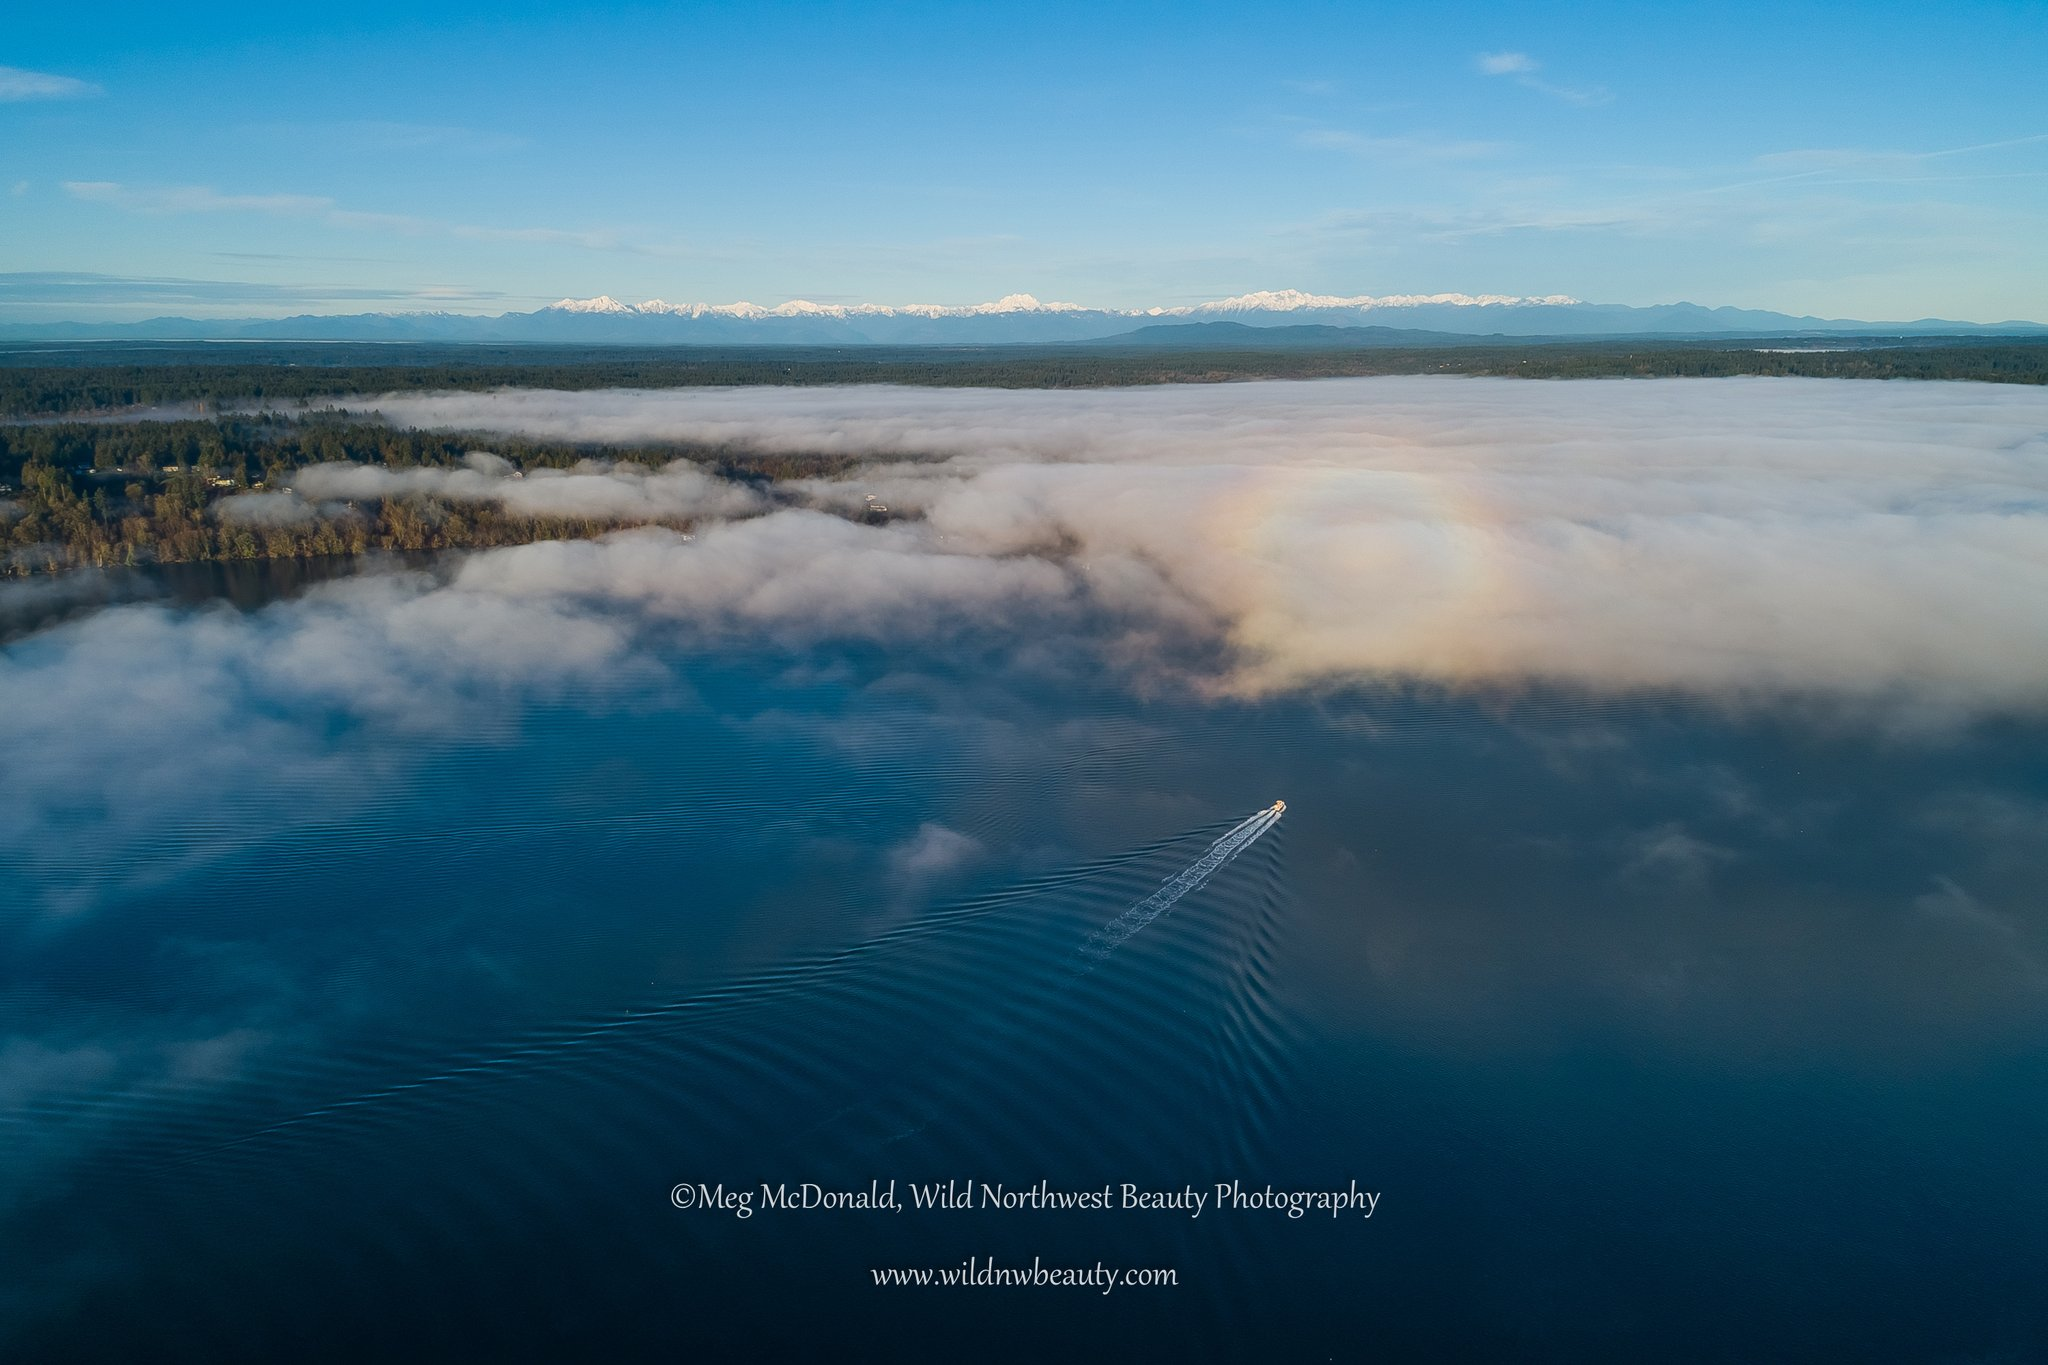 Glory spotted on fog bank over Puget Sound as created by drone (Photo: Meg McDonald / Wild Northwest Beauty Photography)